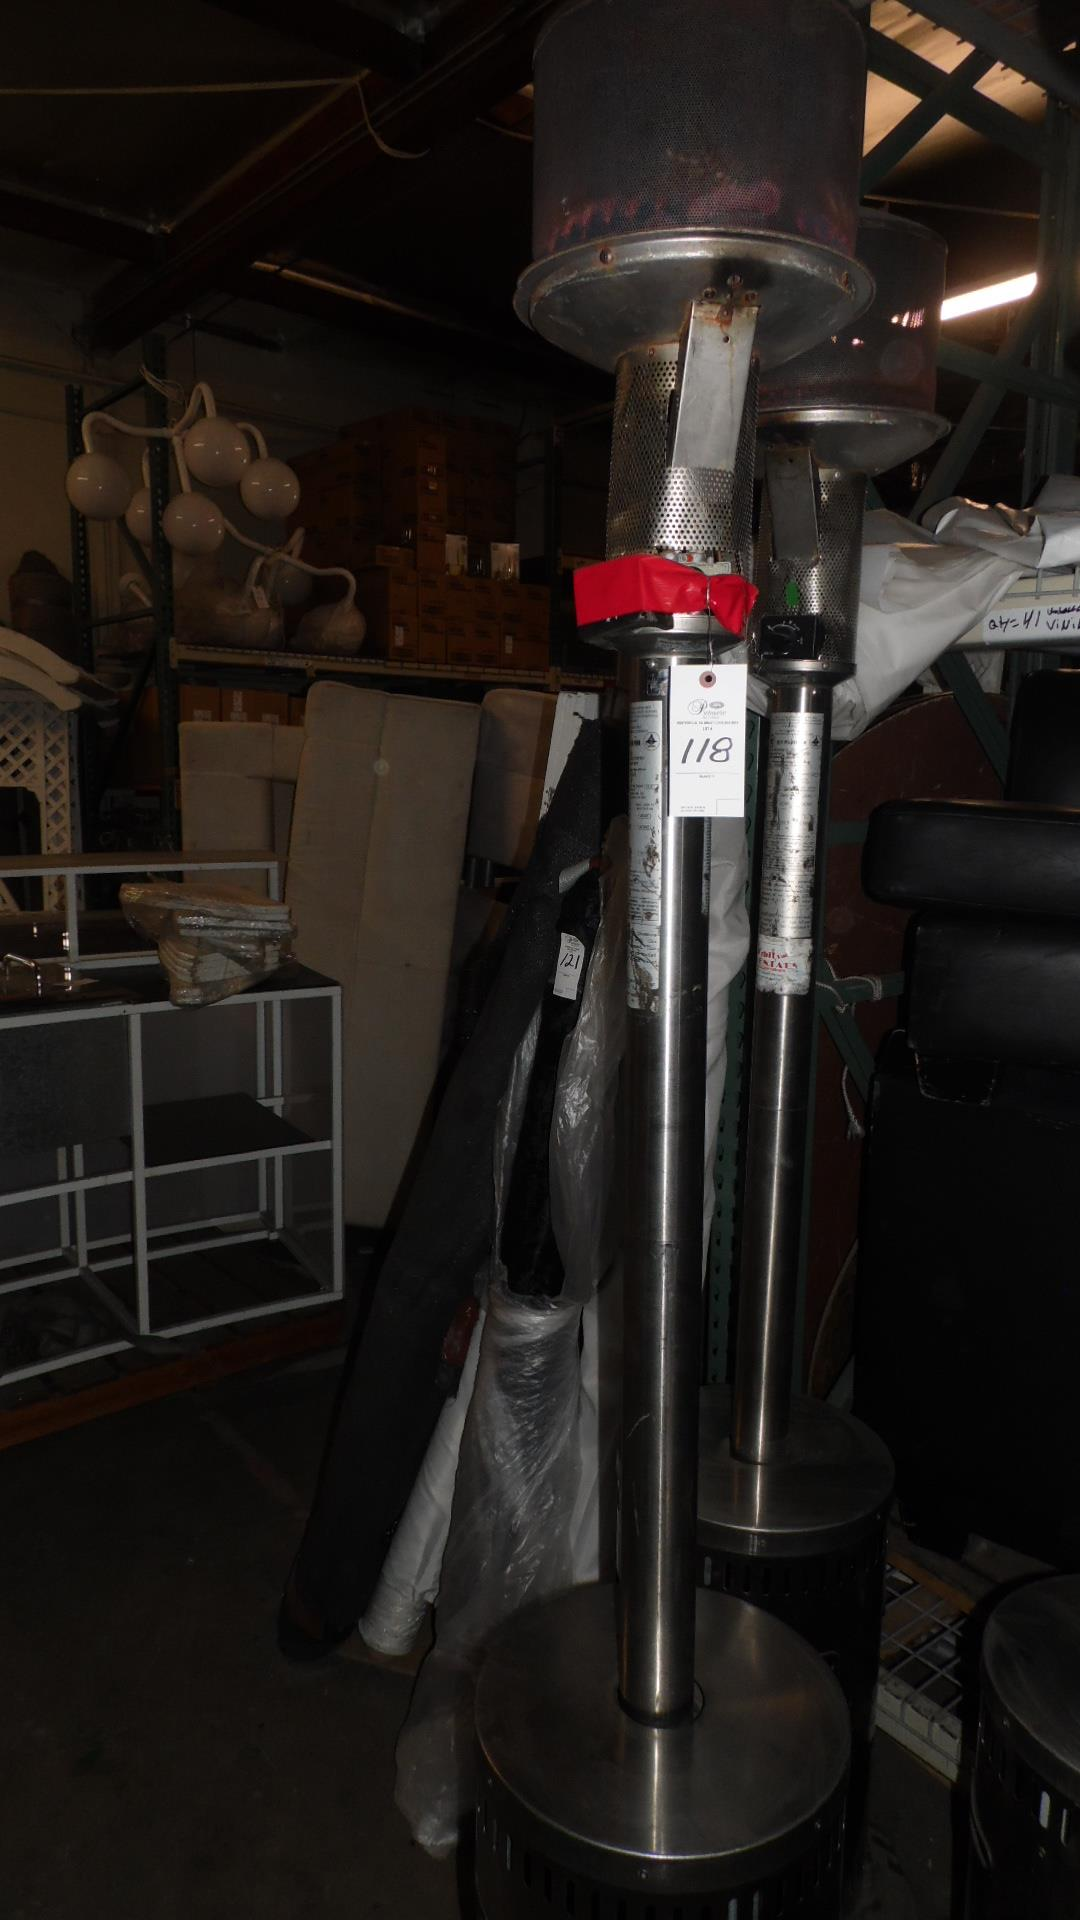 Lot 118 - INFA RED OUTDOOR HEATERS w/ TOP